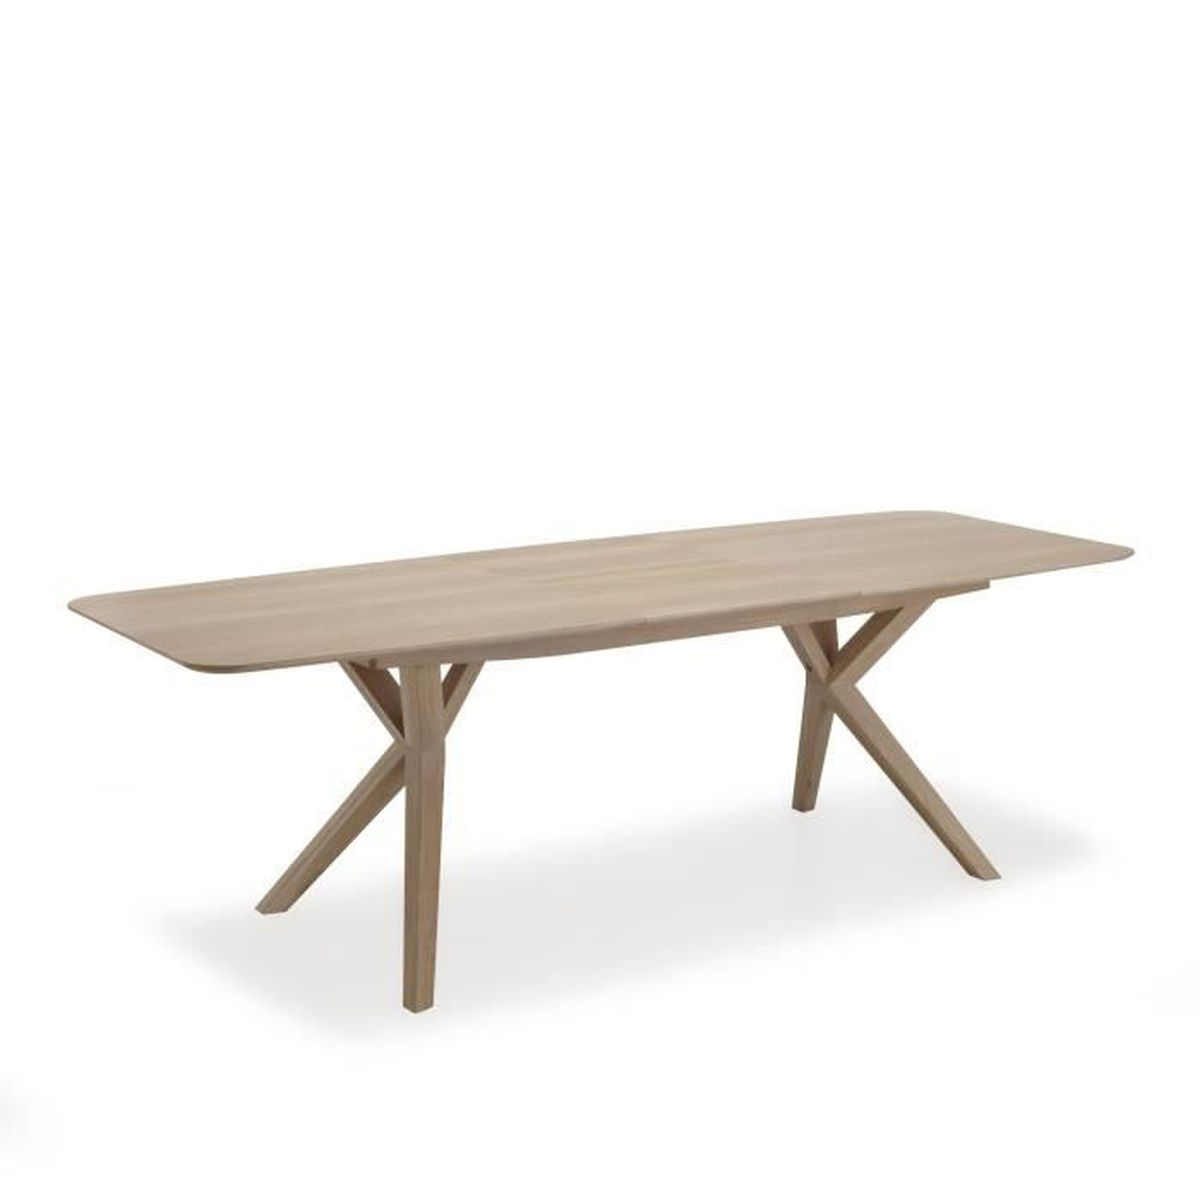 L onie table extensible avec allonge papillon l 185cm for Table a manger avec allonges